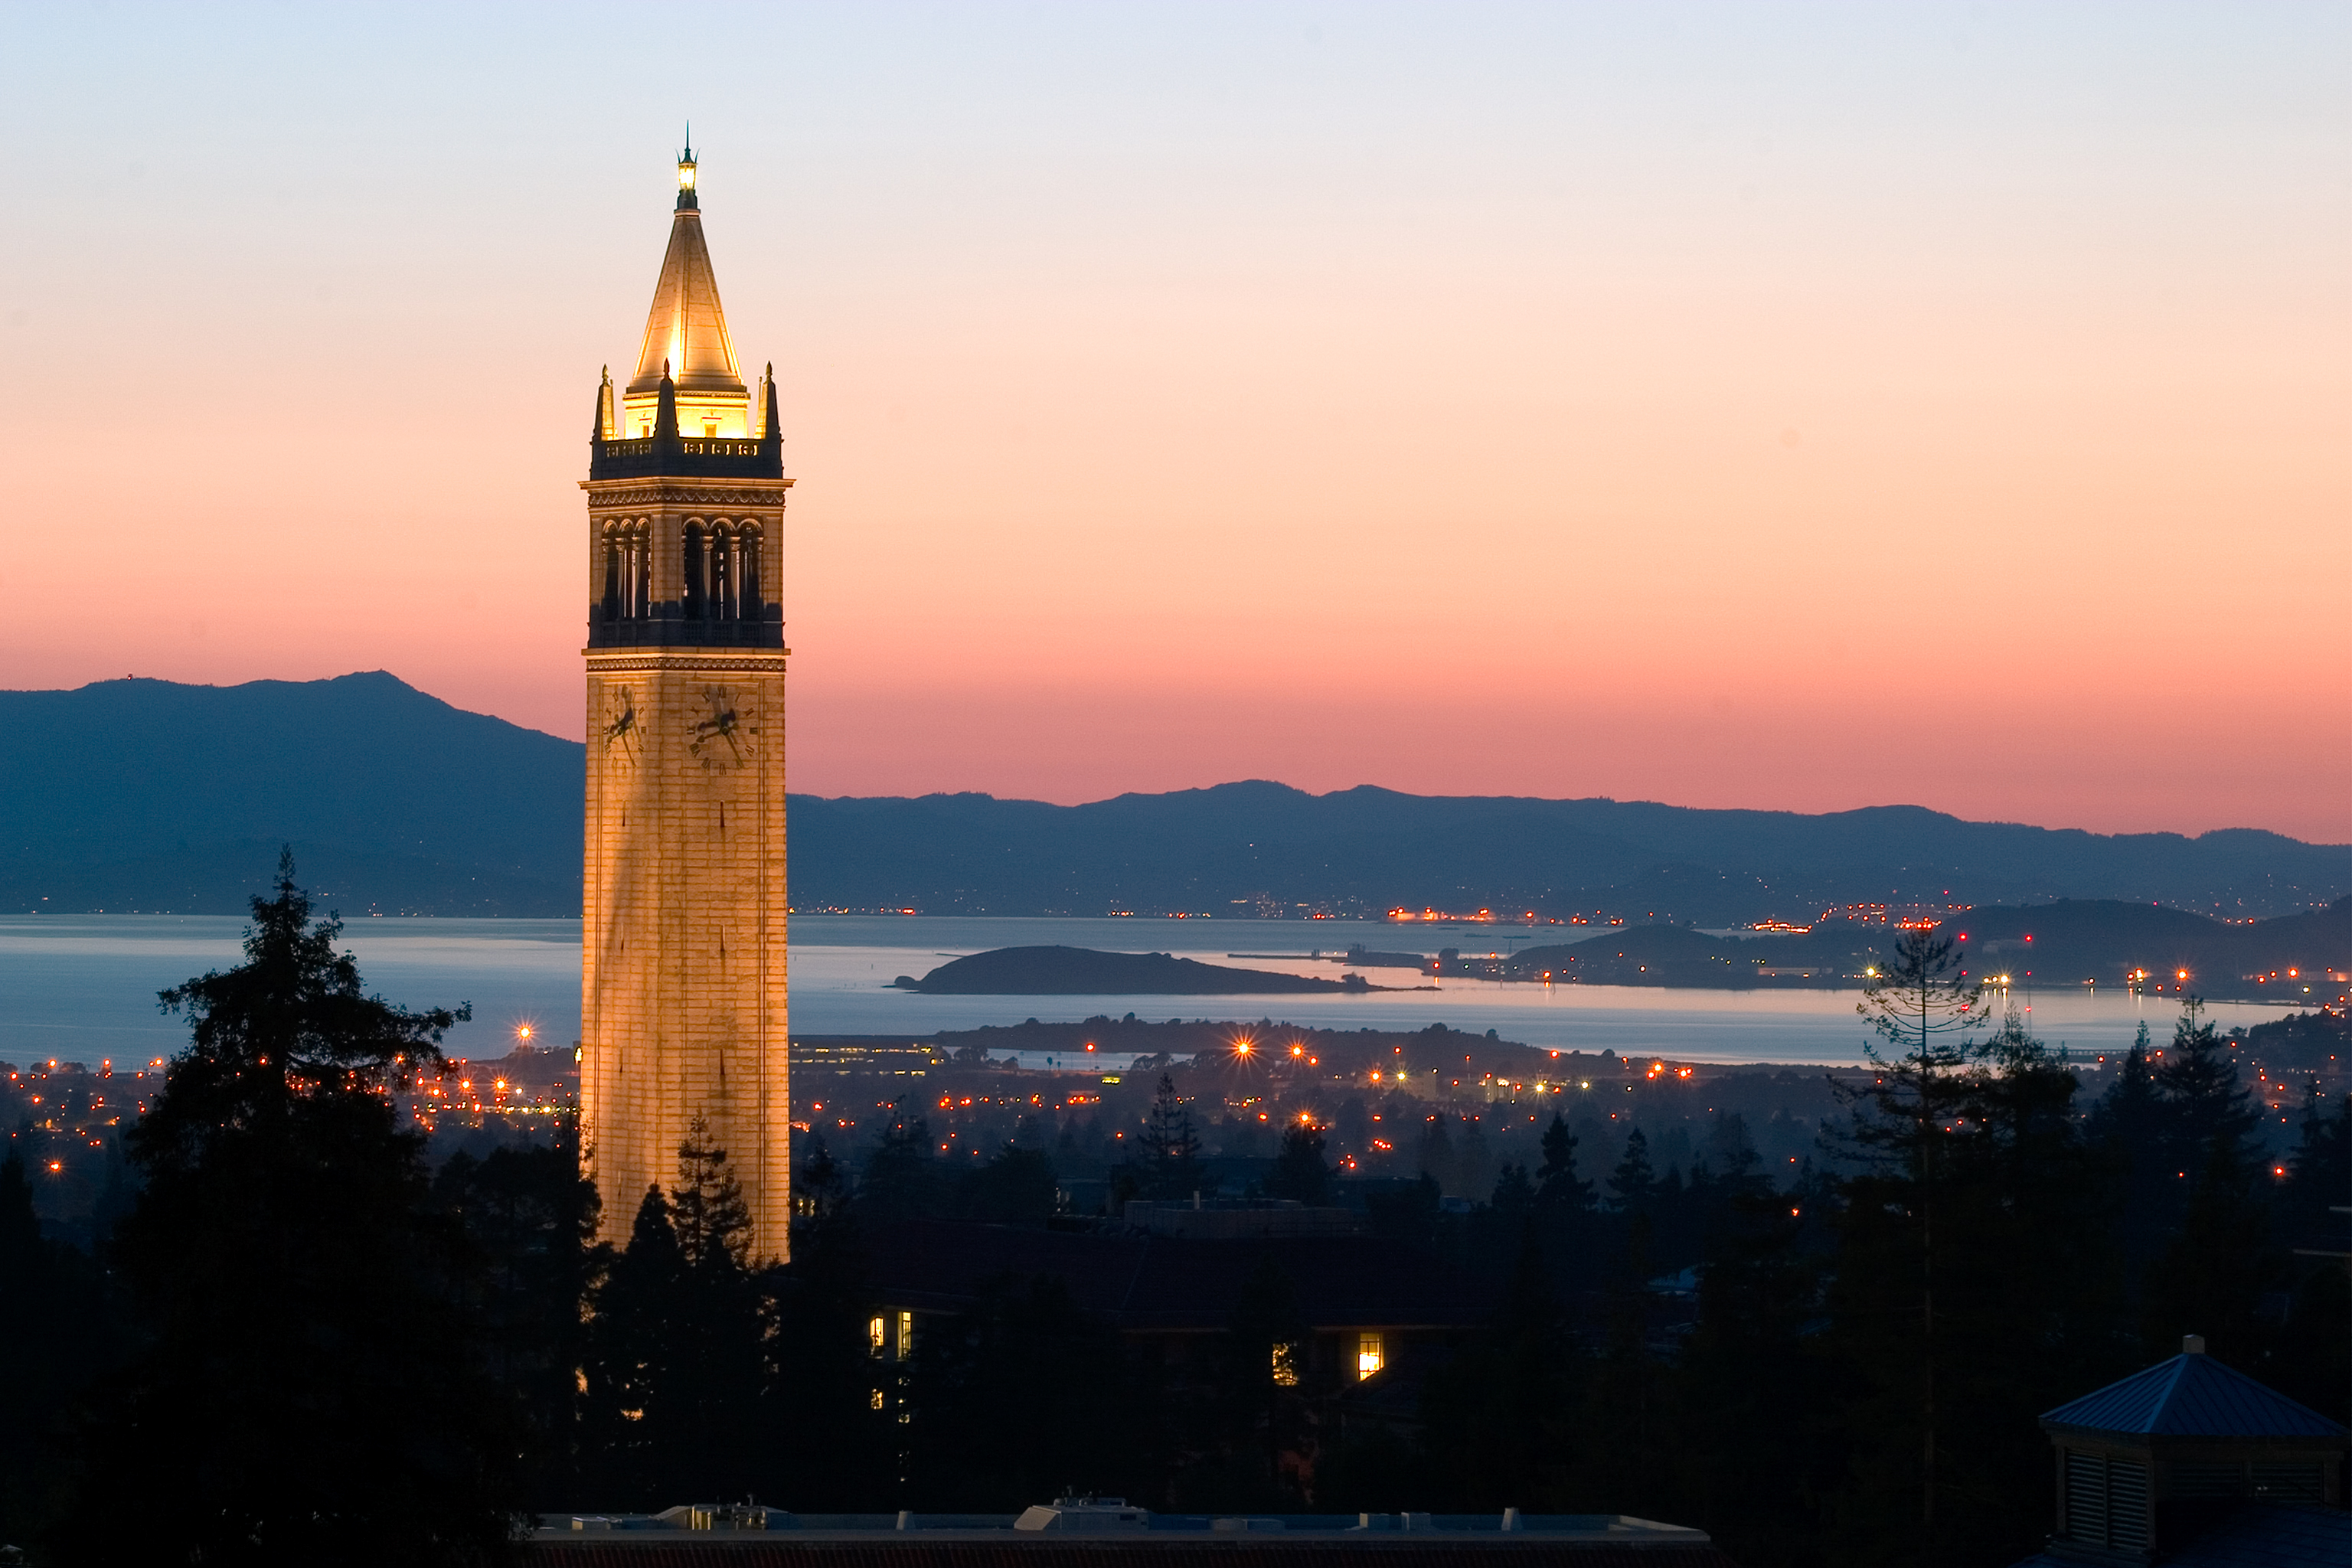 Berkeley University Sather Tower